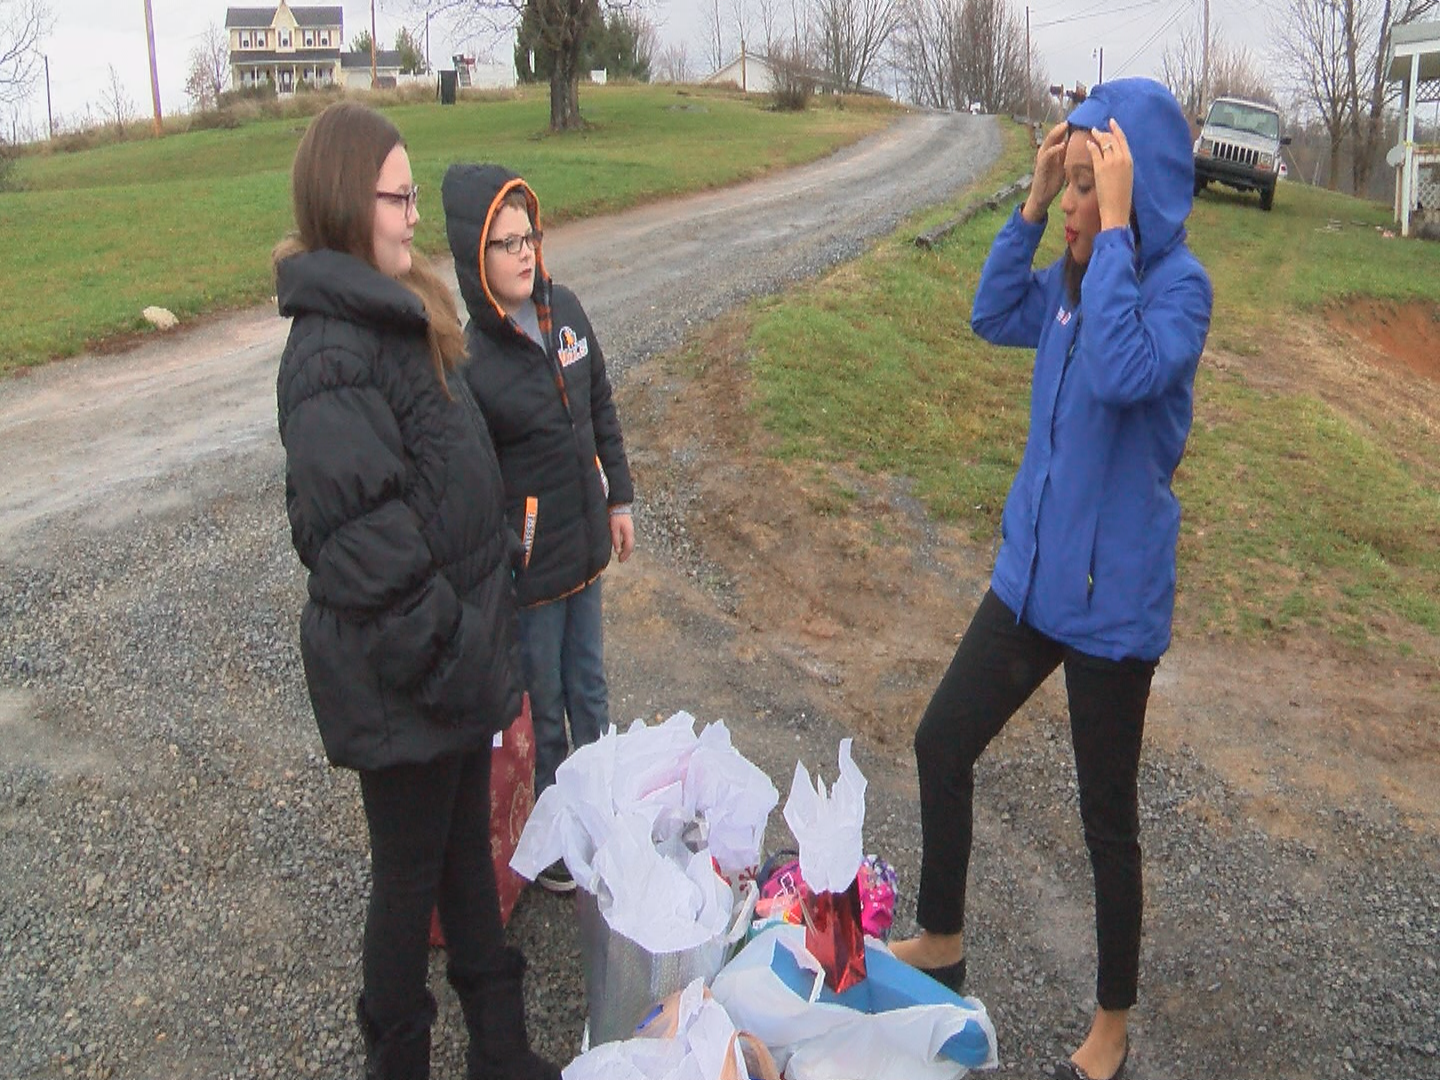 Carter Co family Christmas surprise after fire_87659